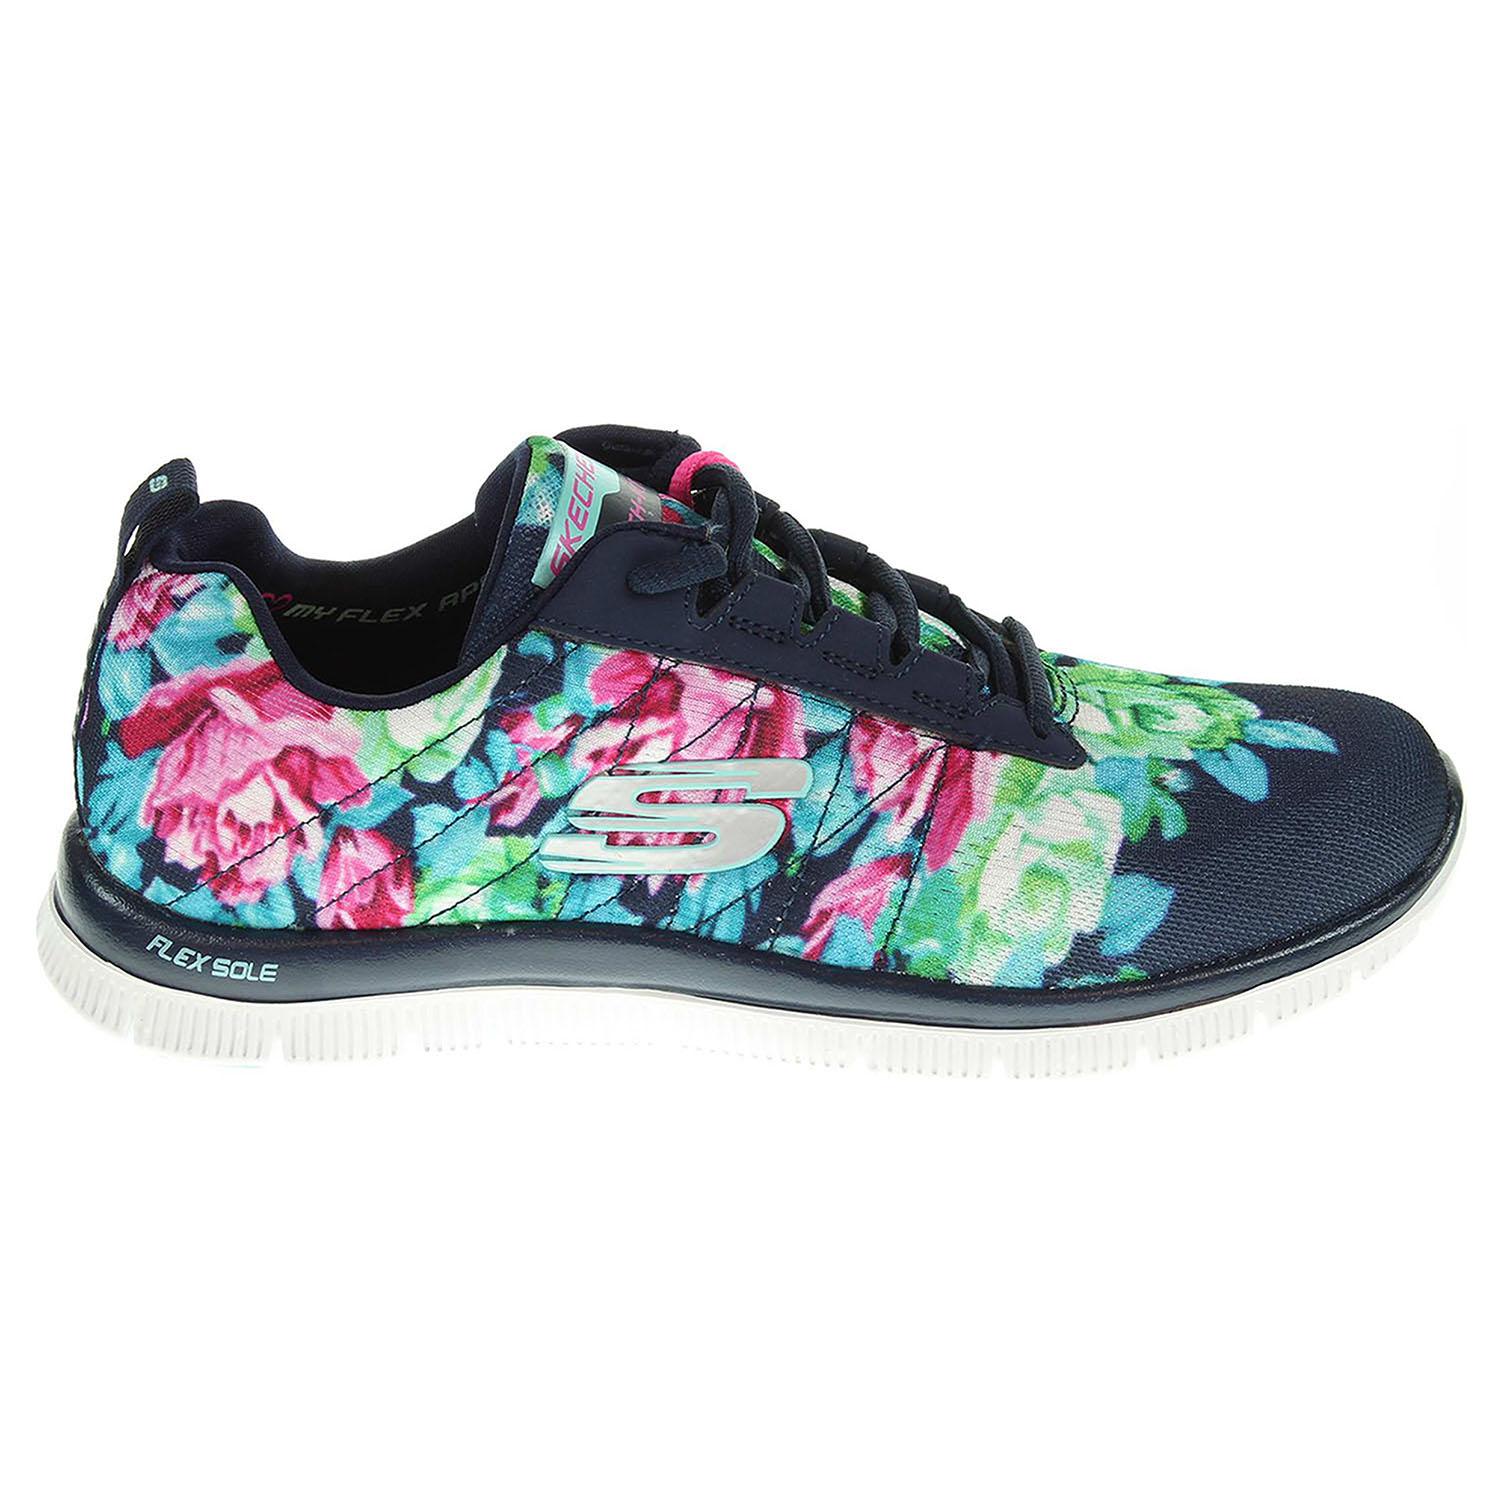 Skechers Wildflowers navy-multi 38